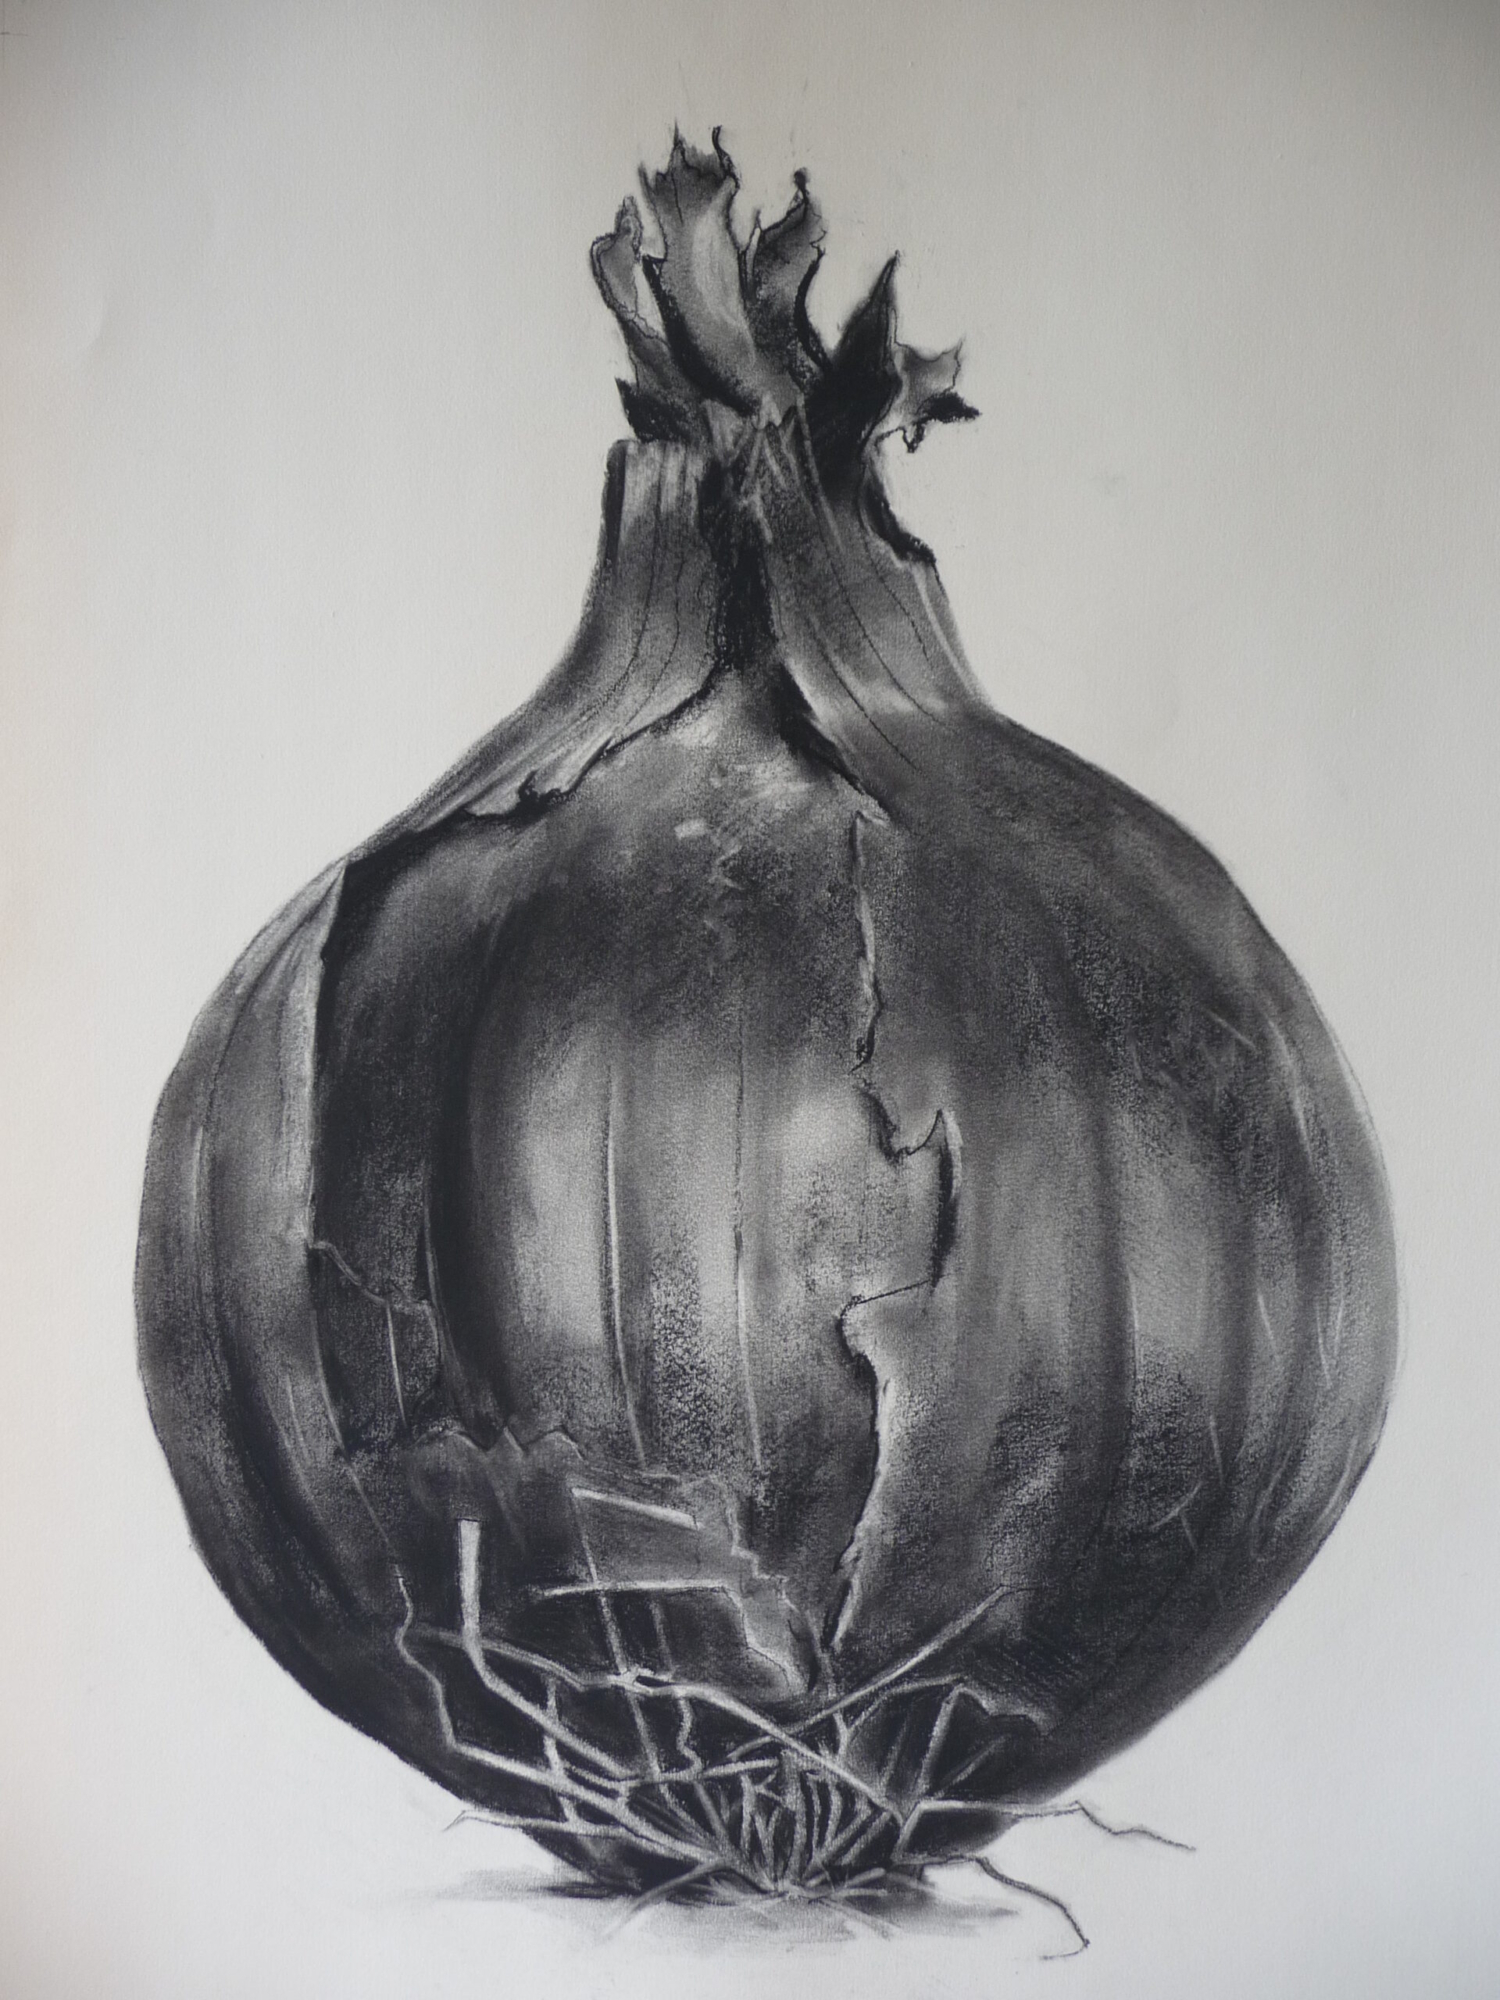 Charcoal drawing of a red onion